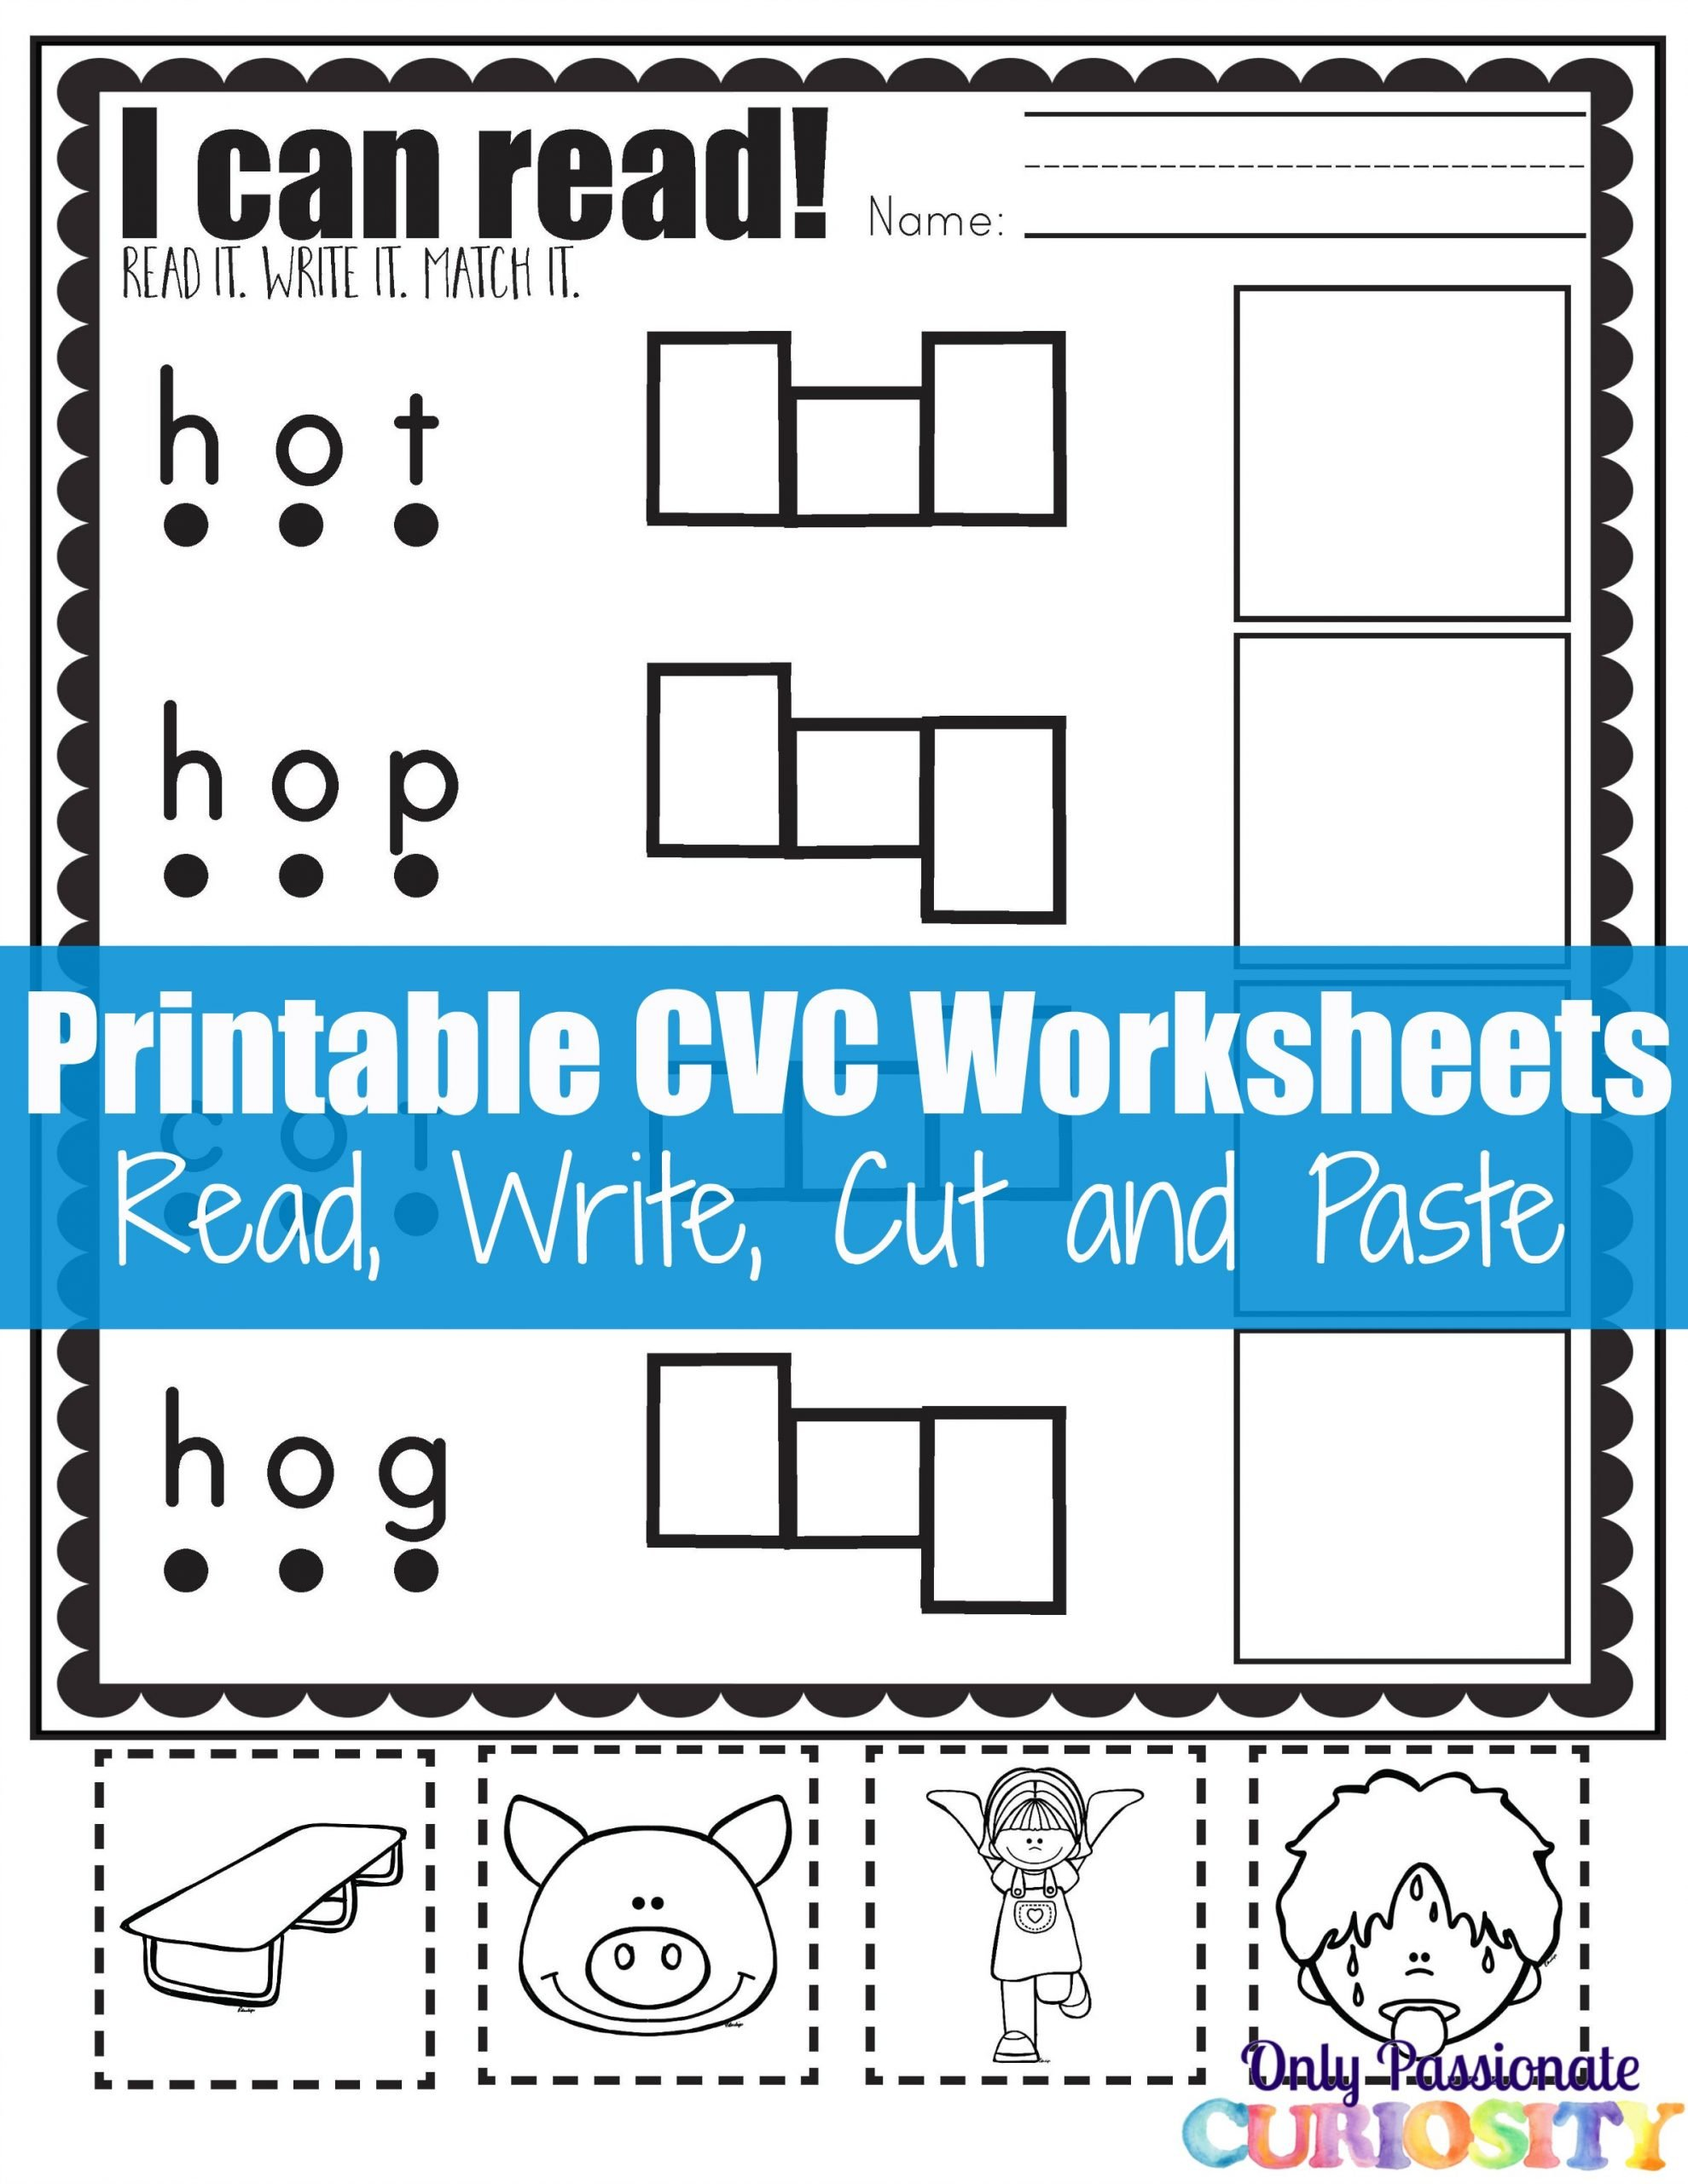 Cvc Cut and Paste Worksheets Cvc Worksheets Cut and Paste Letter O Ly Passionate